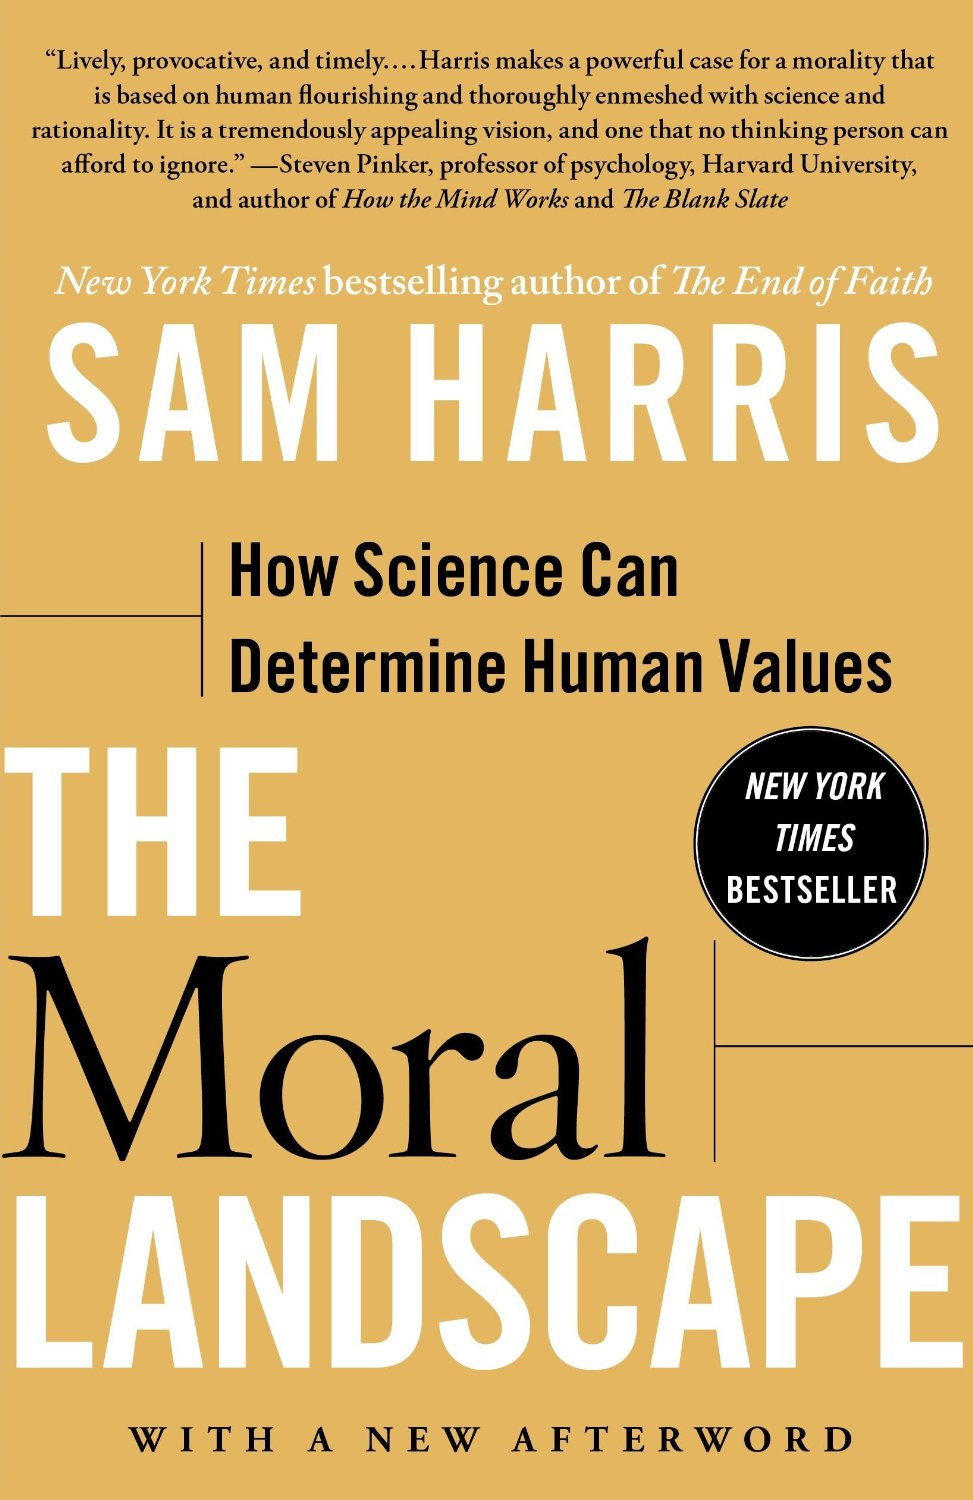 sam harris the end of faith essay Watch video questions of good and evil, right and wrong are commonly thought unanswerable by science but sam harris argues that science can -- and should -- be an authority on moral issues, shaping human values.